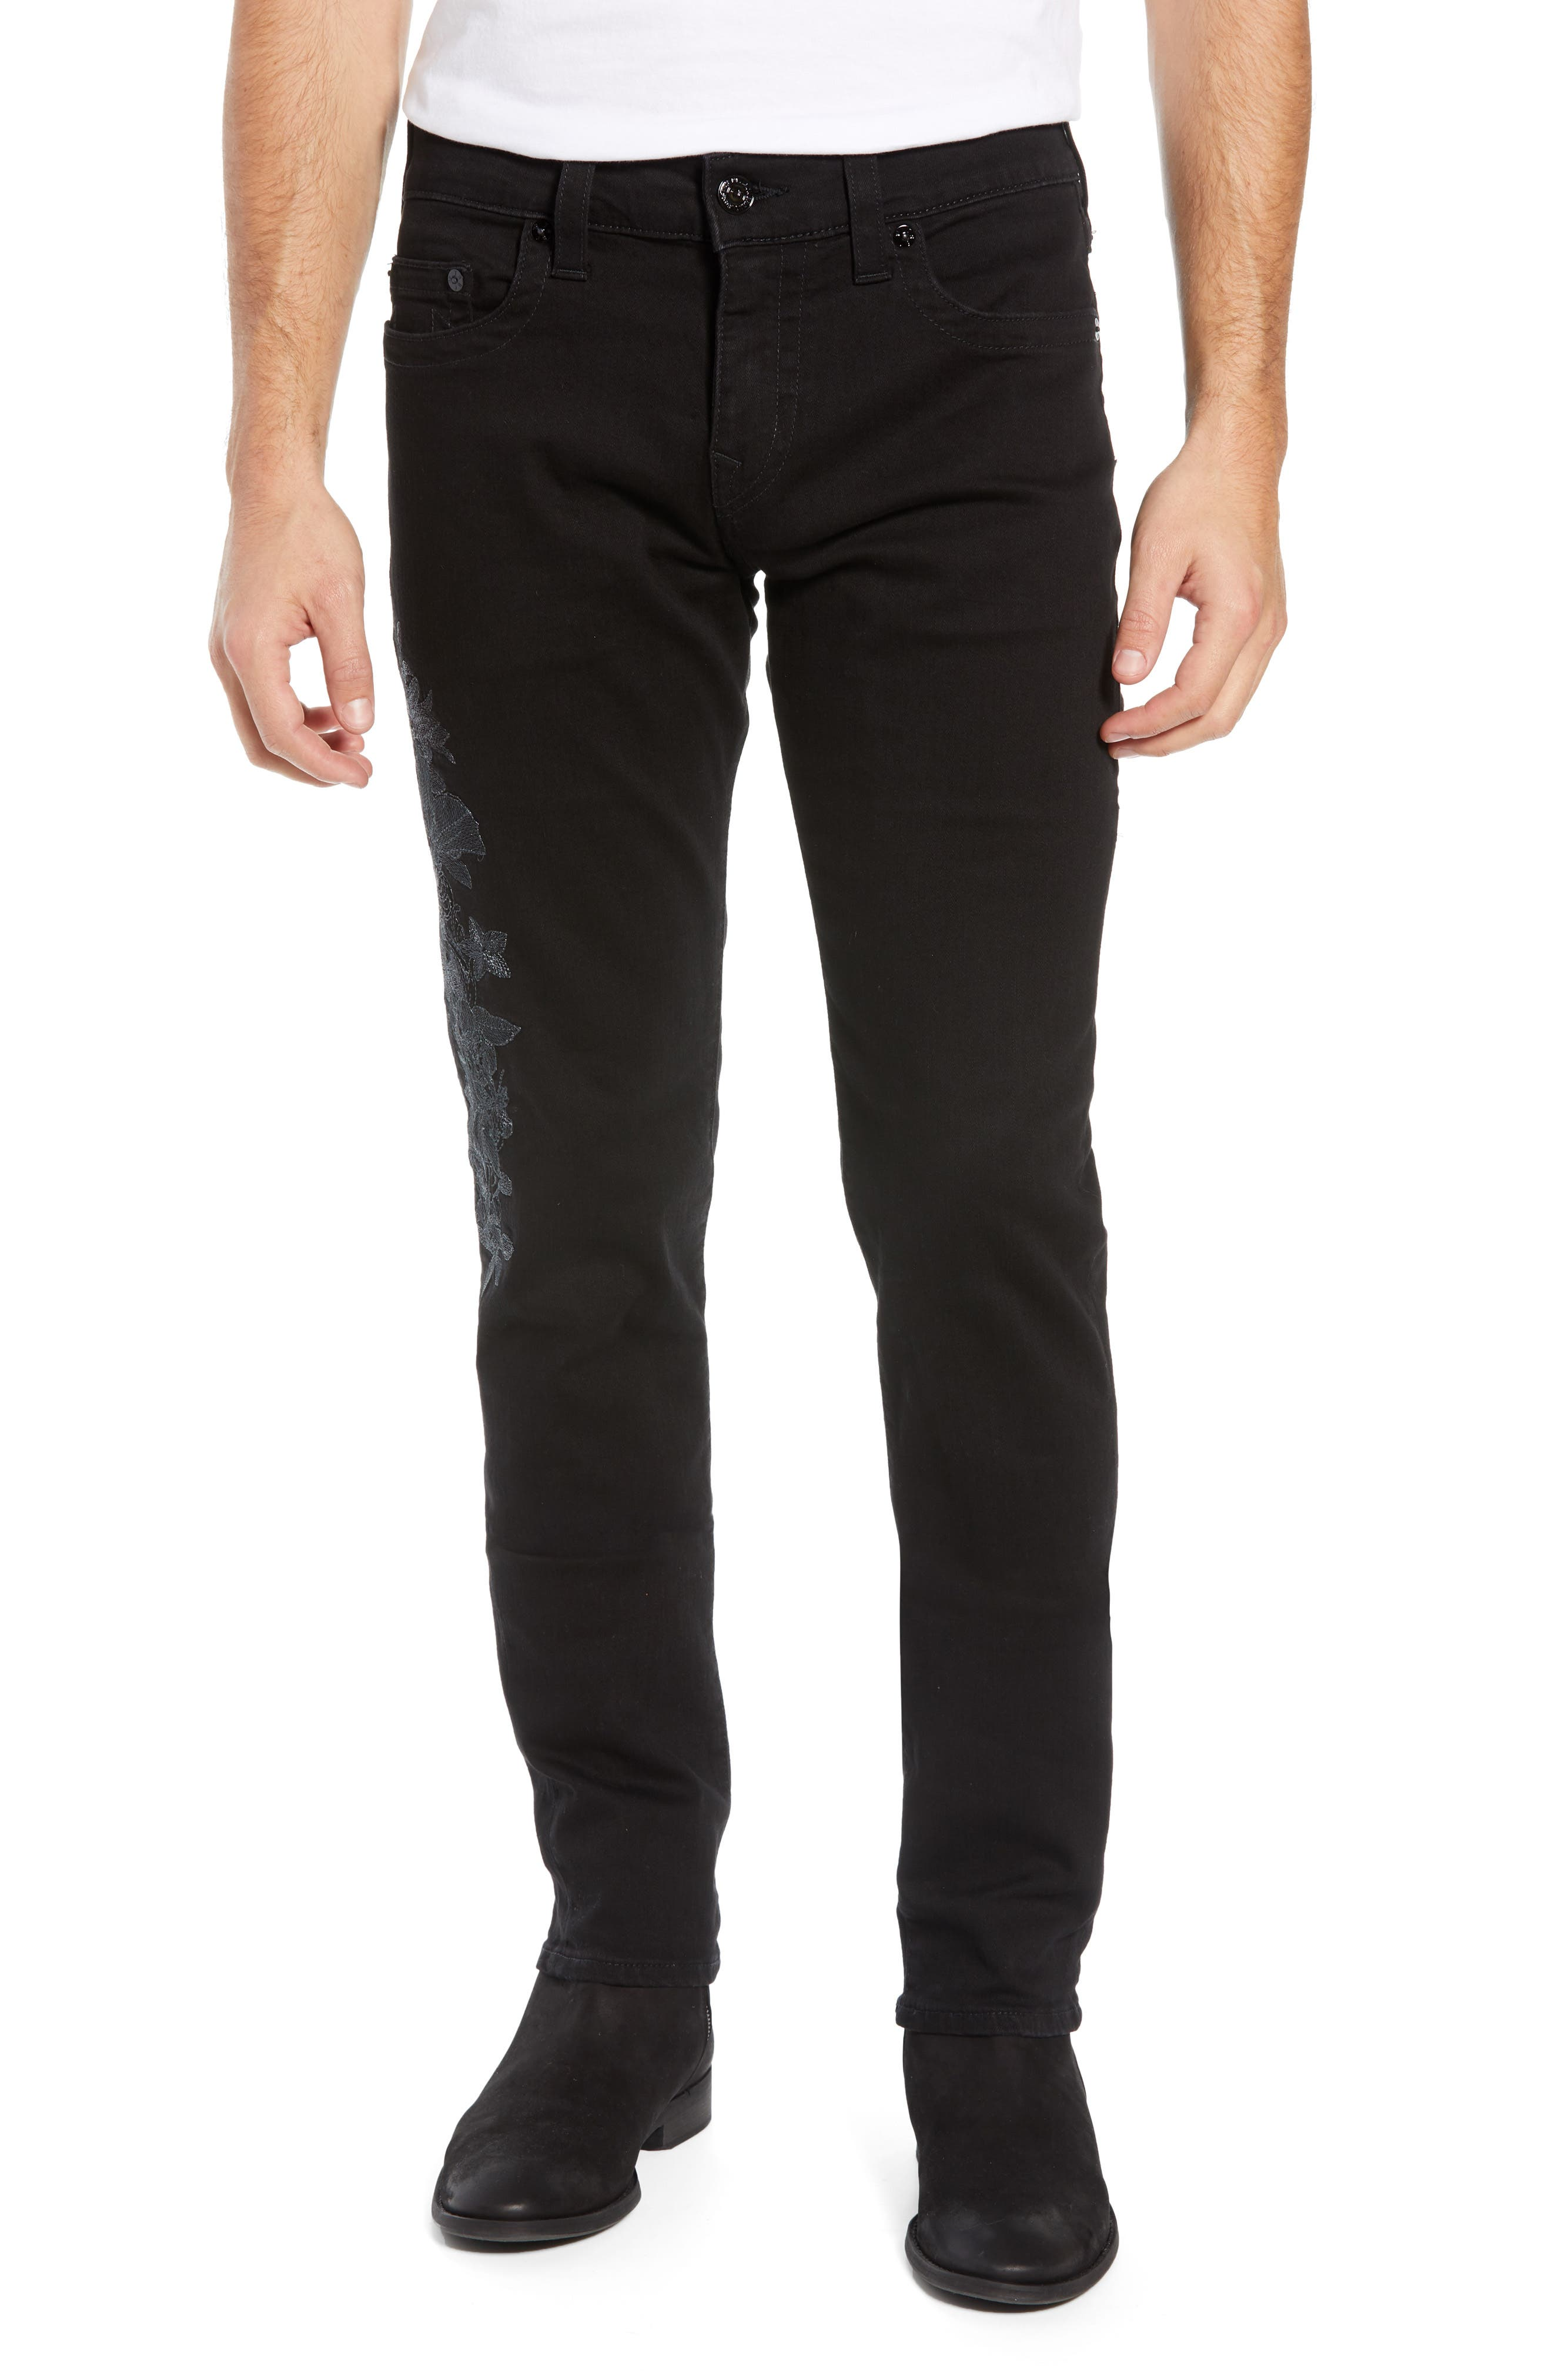 TRUE RELIGION BRAND JEANS,                             Rocco Skinny Fit Jeans,                             Main thumbnail 1, color,                             FPCB MAGNETIC FIELD